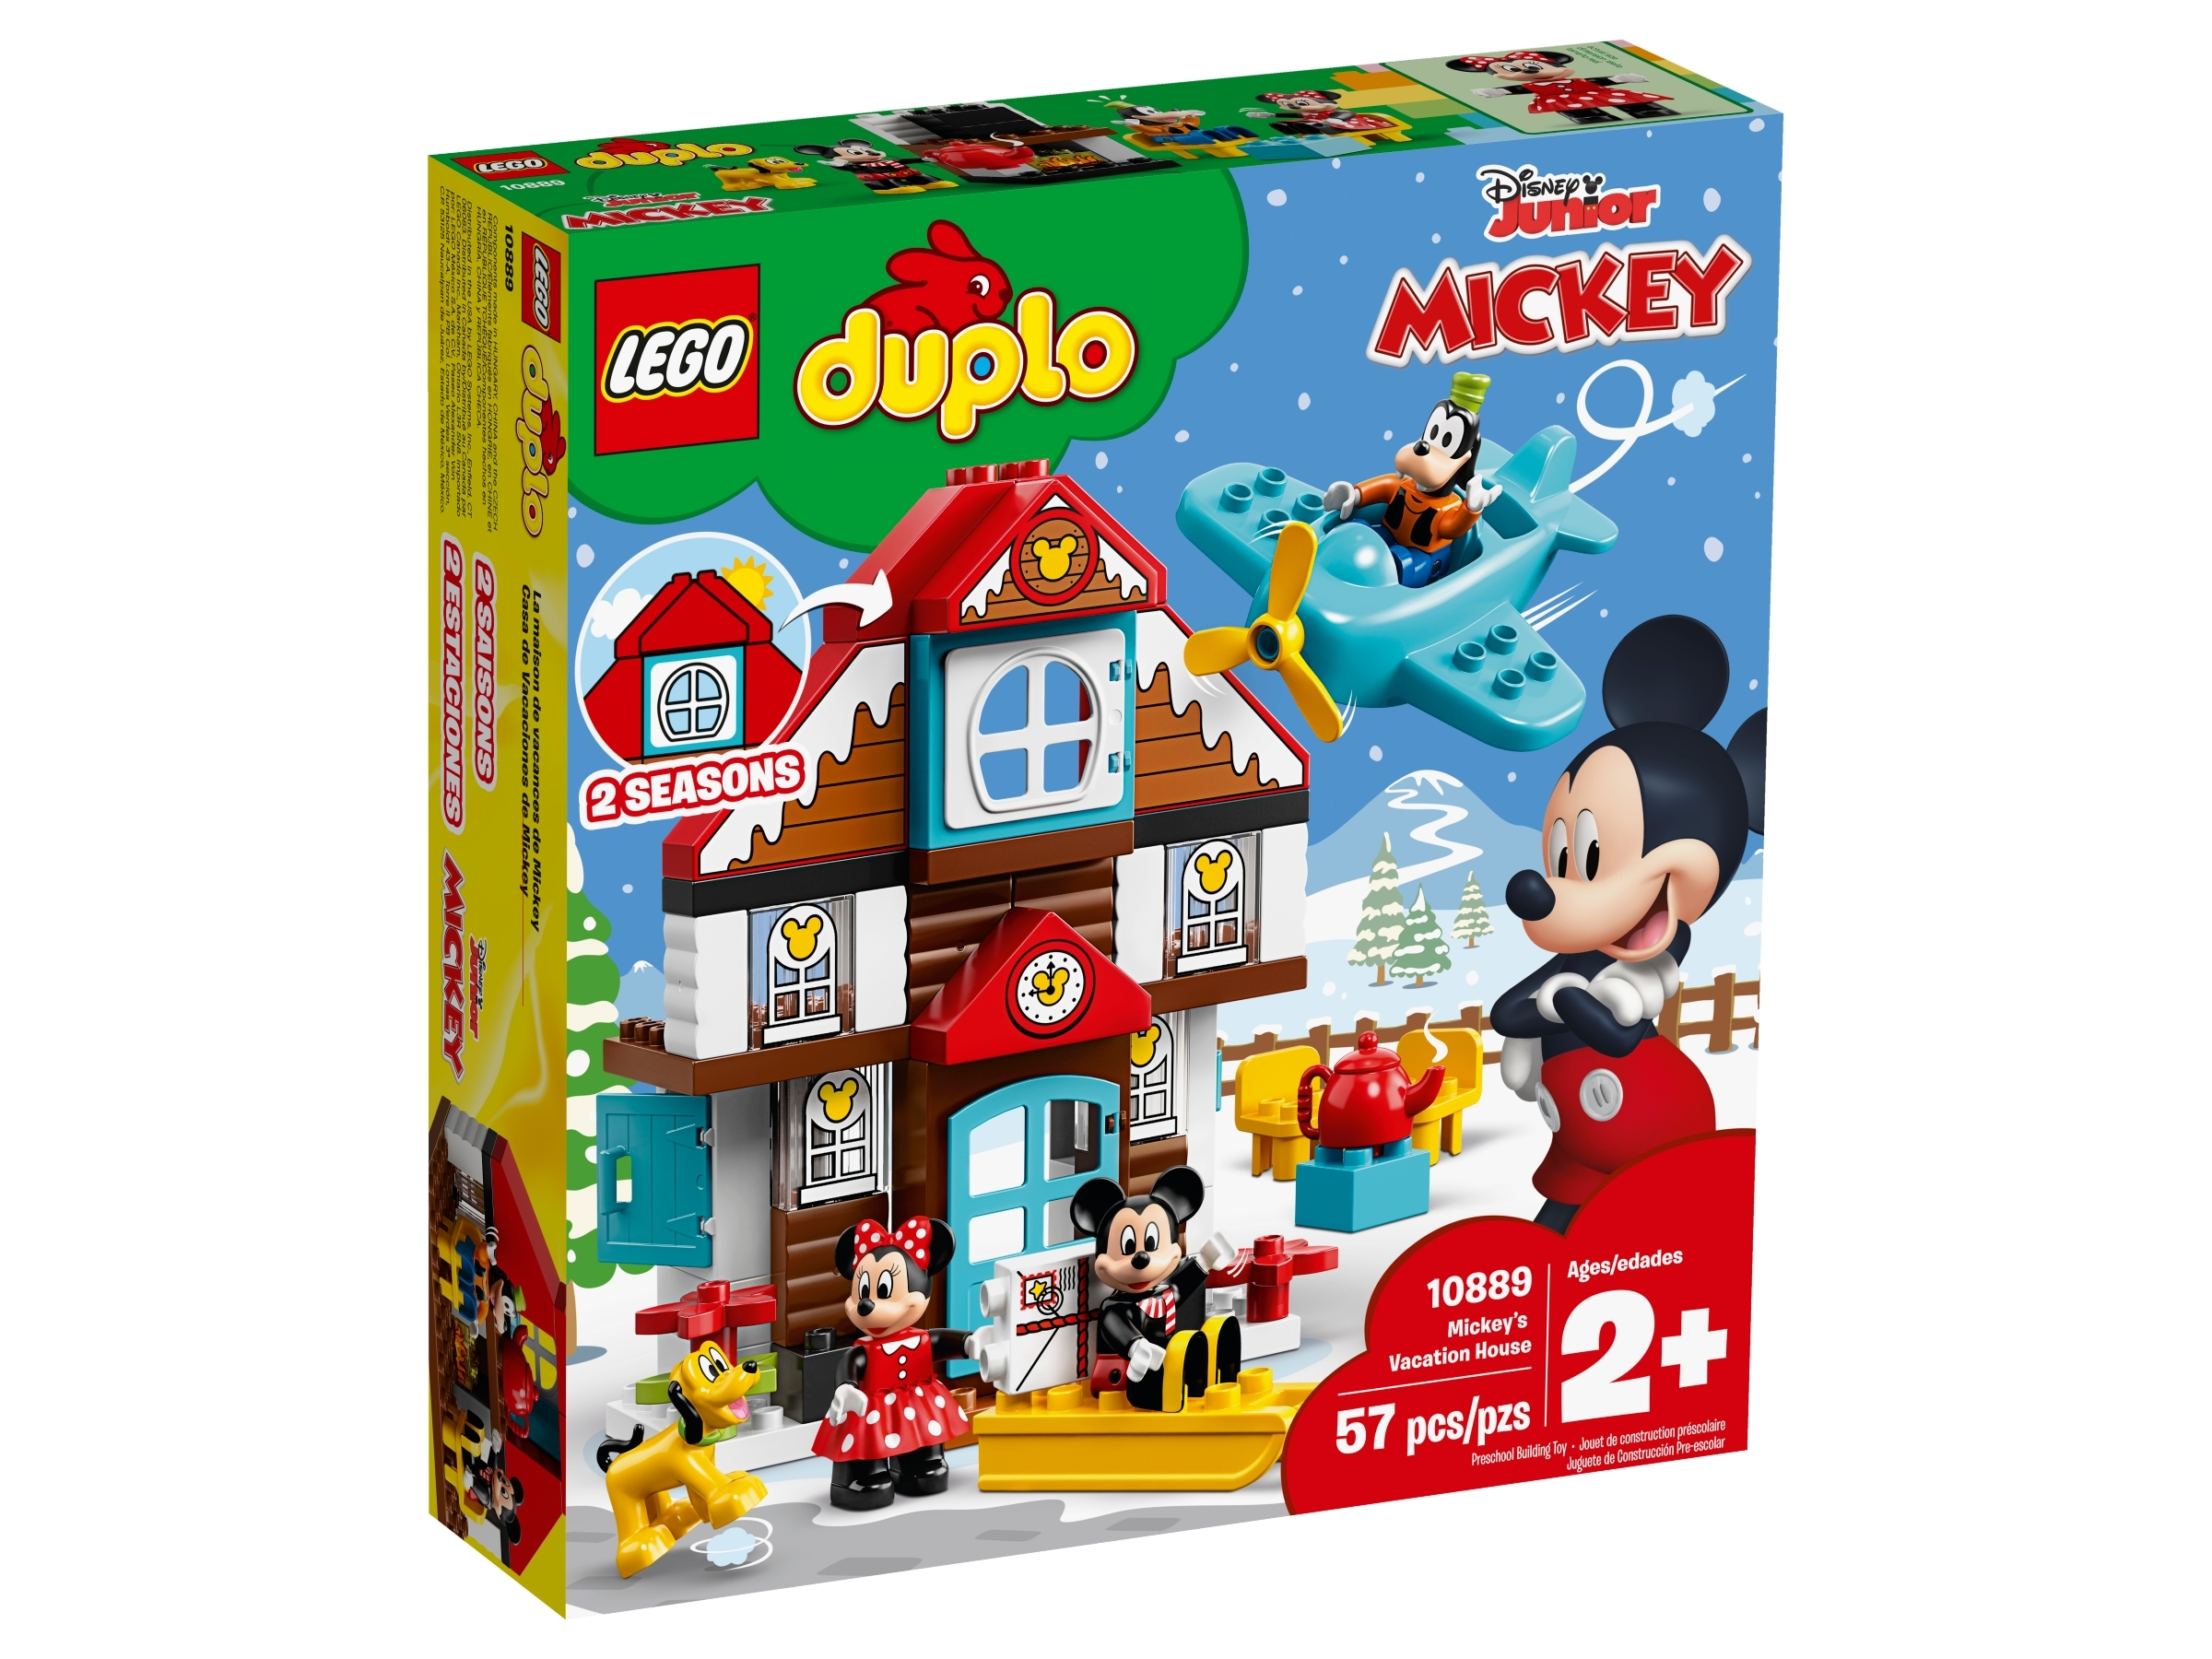 Mickey S Vacation House 10889 Disney Buy Online At The Official Lego Shop Us